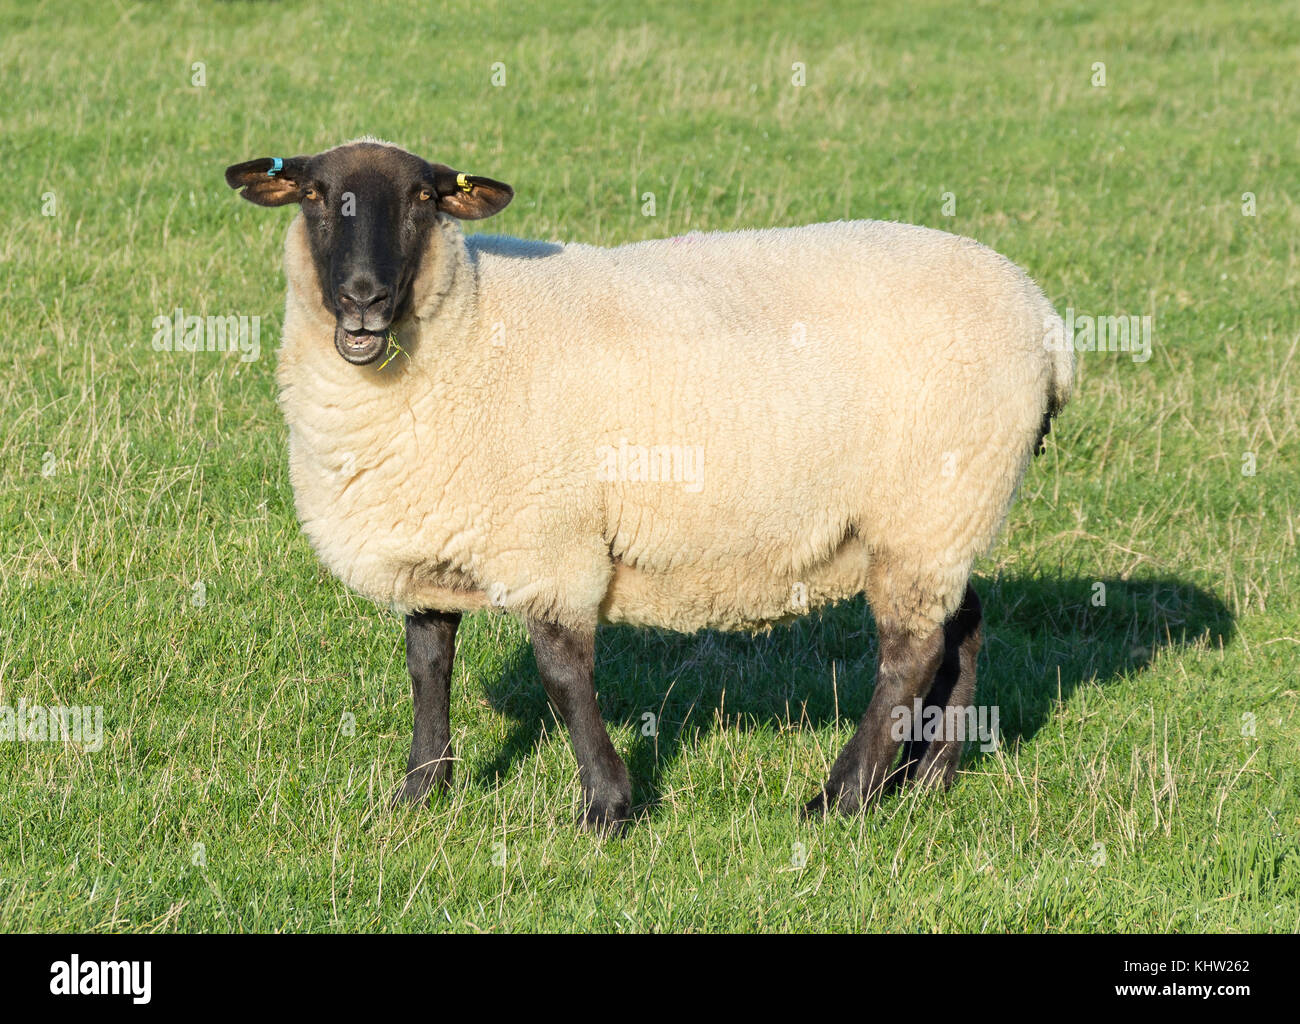 Suffolk sheep in field, Seaford Head Nature Reserve, Seaford, East Sussex, England, United Kingdom - Stock Image